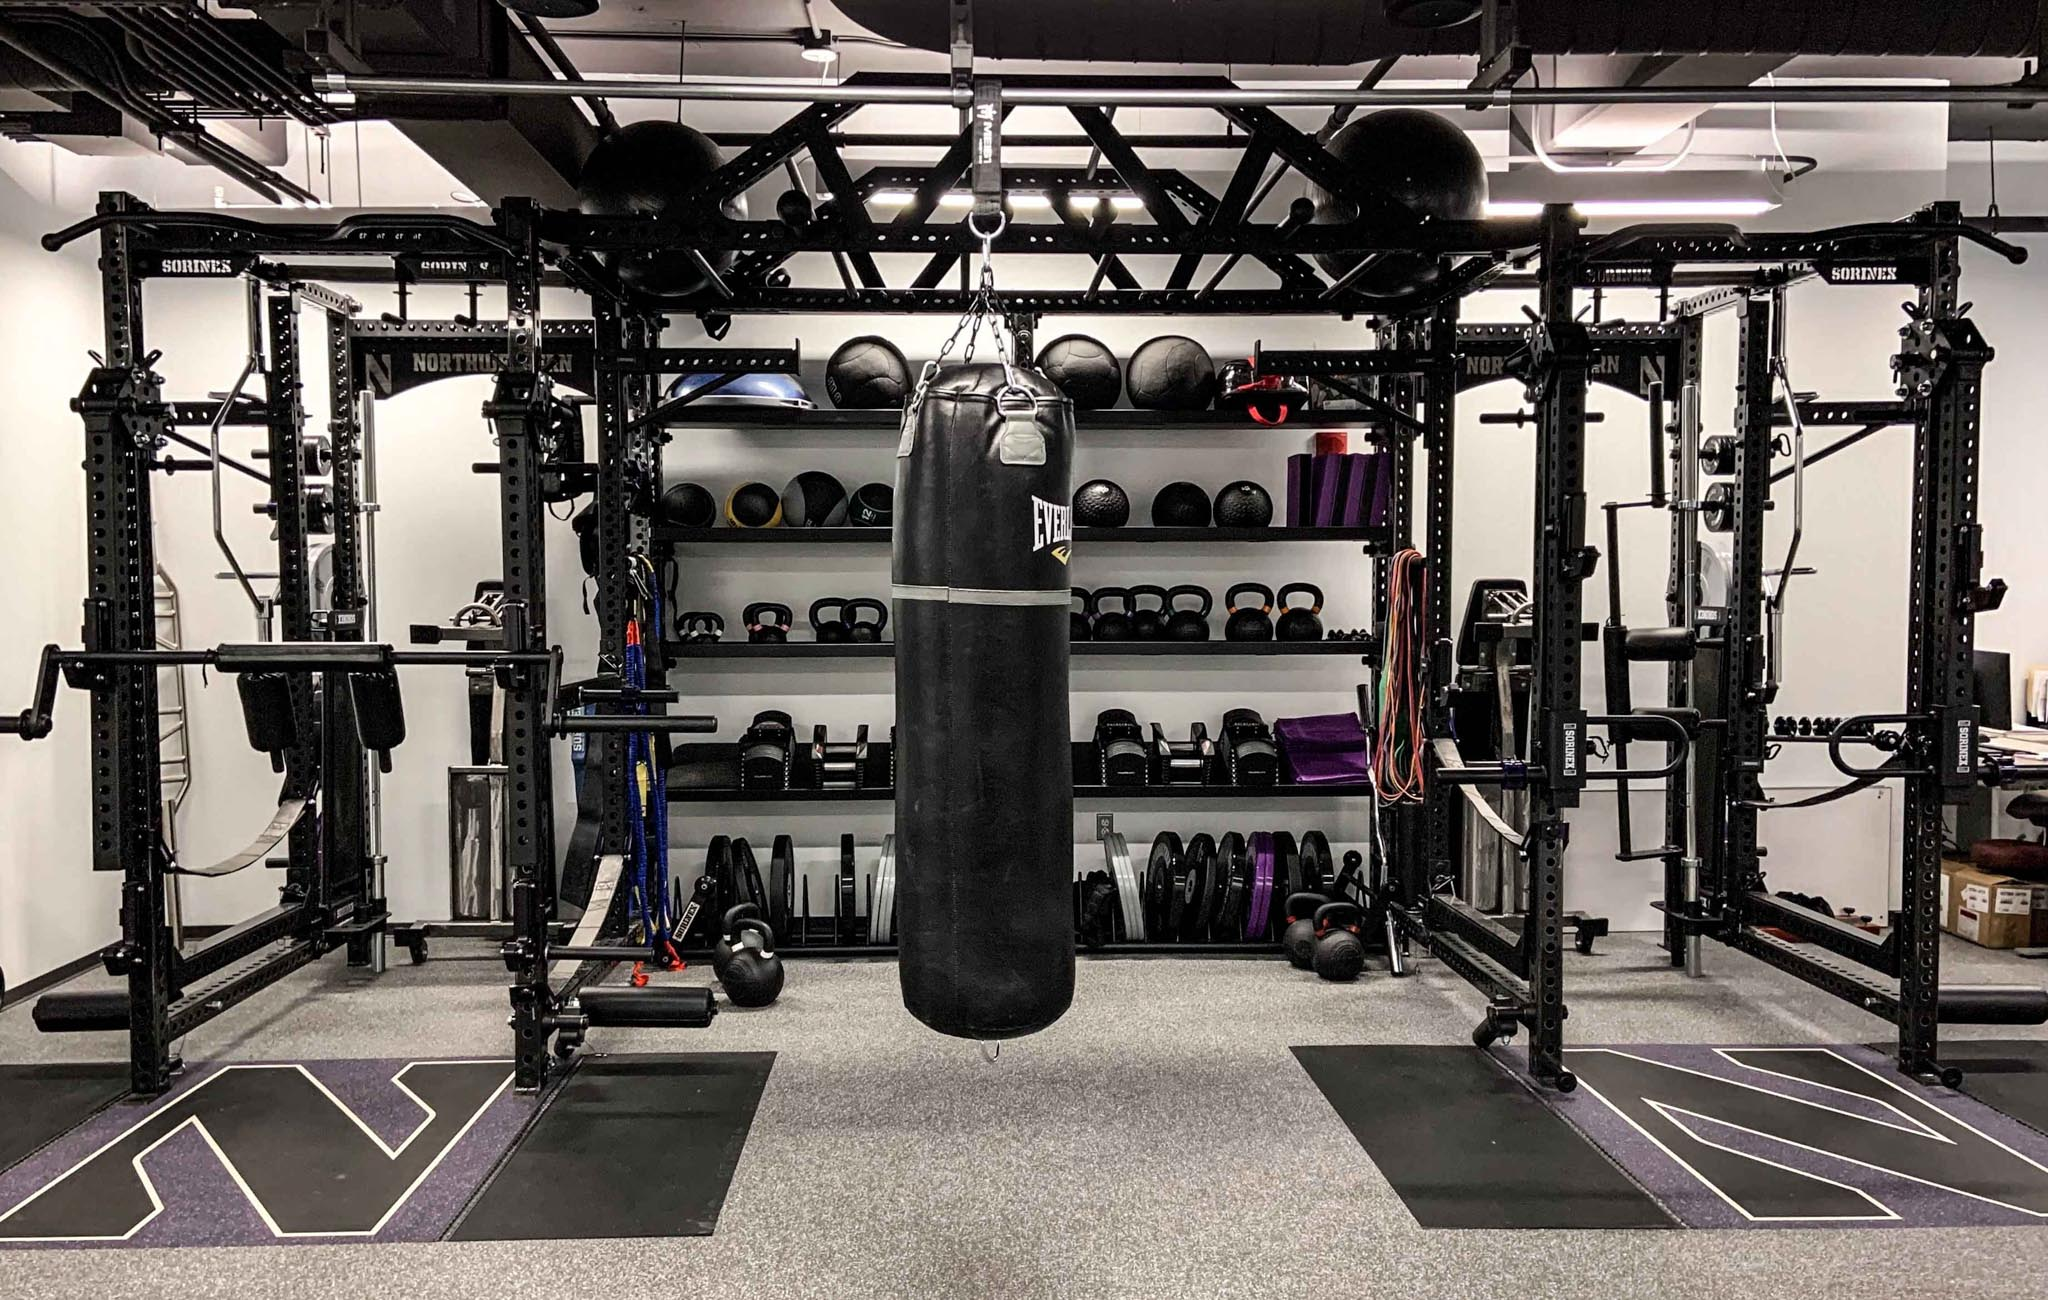 Northwestern golf strength and conditioning